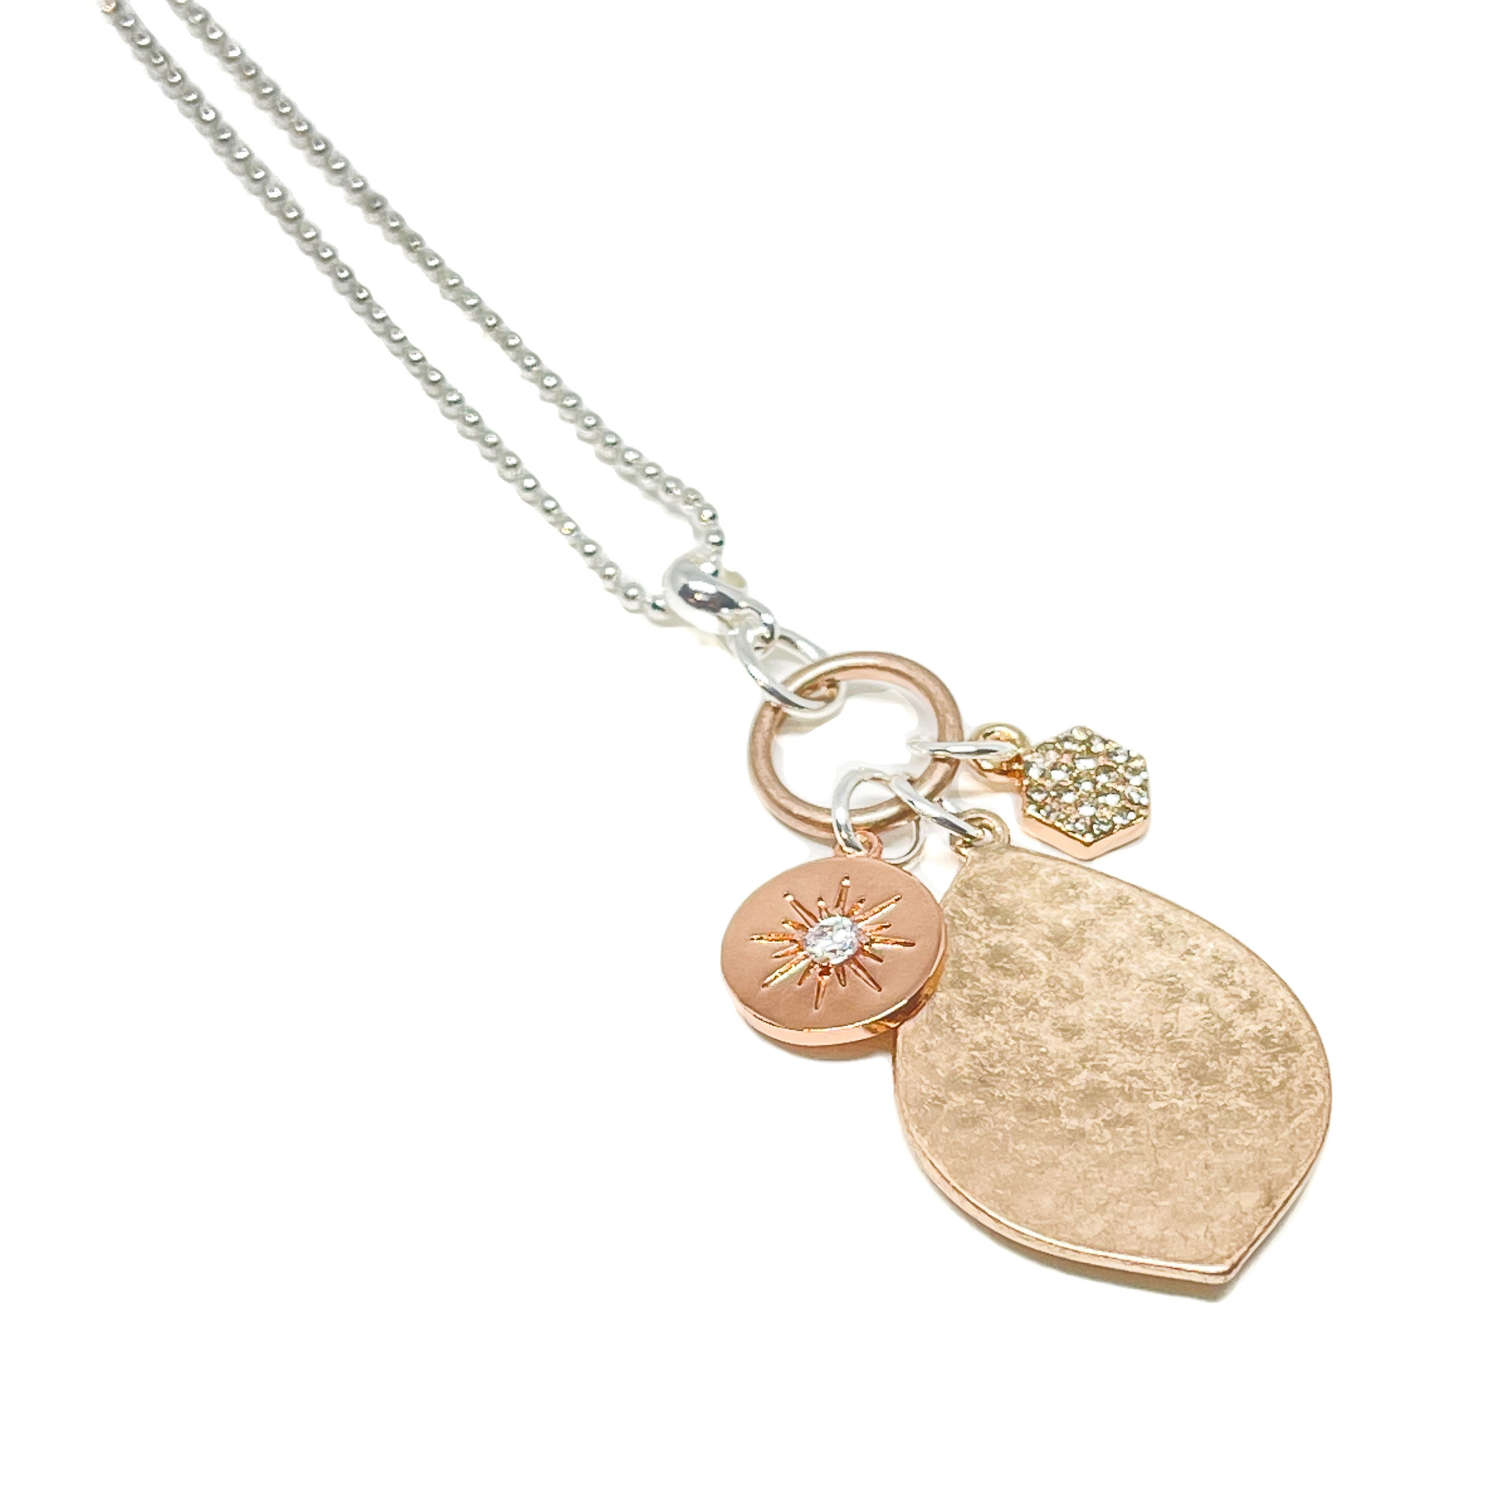 Petra Charm Necklace - Rose Gold